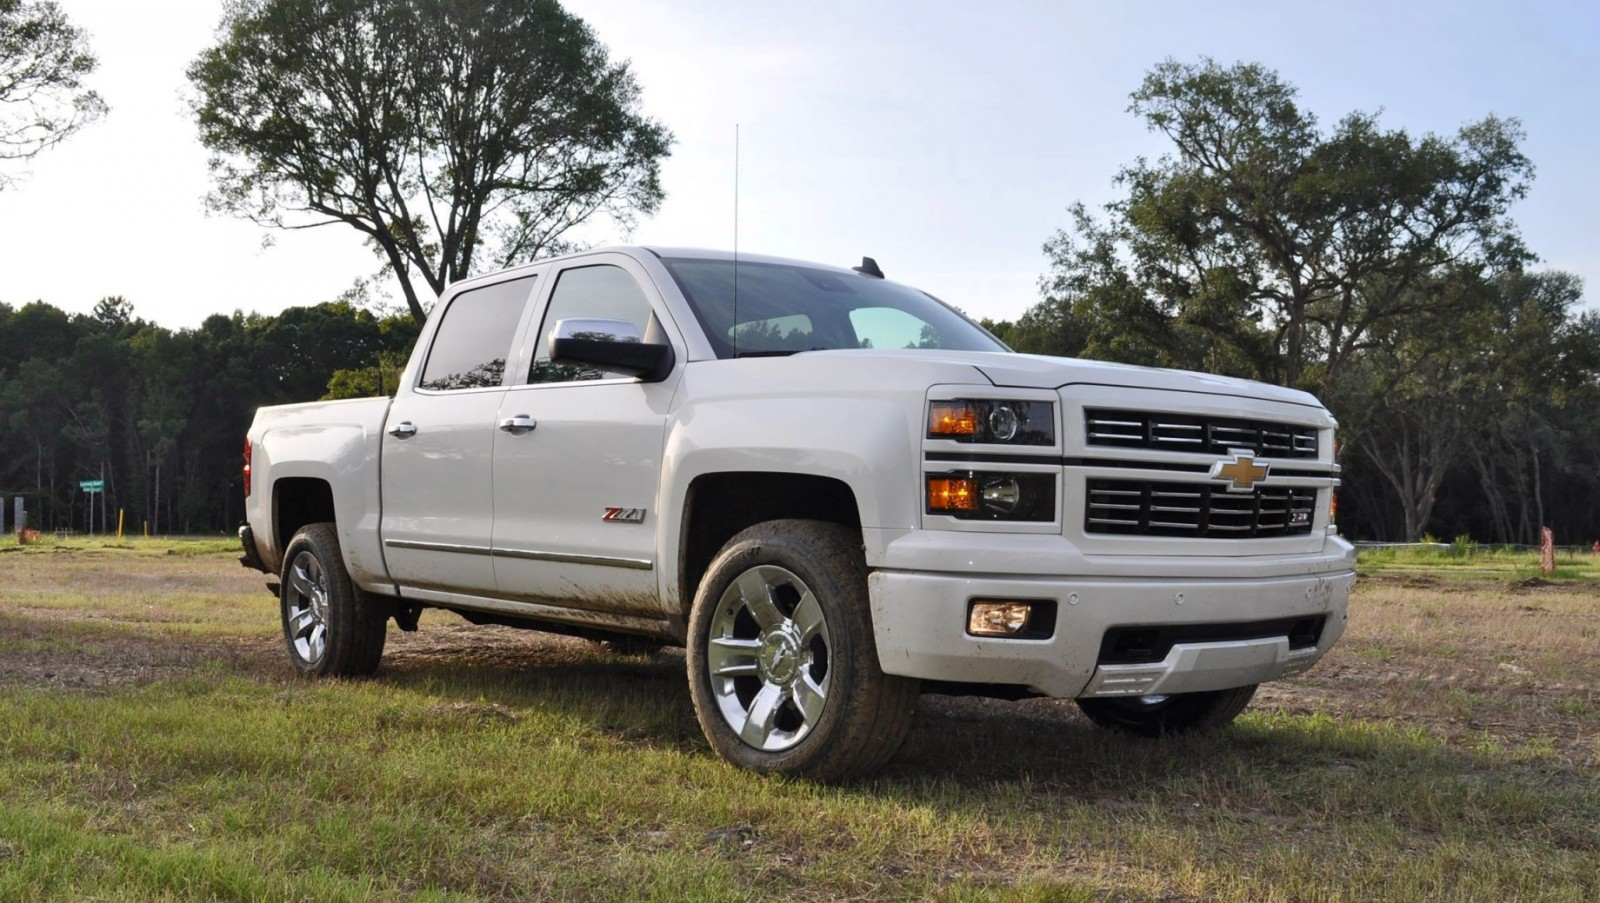 2016 Chevrolet SILVERADO Black Out Edition is $35k and Dripping Wet Gloss!